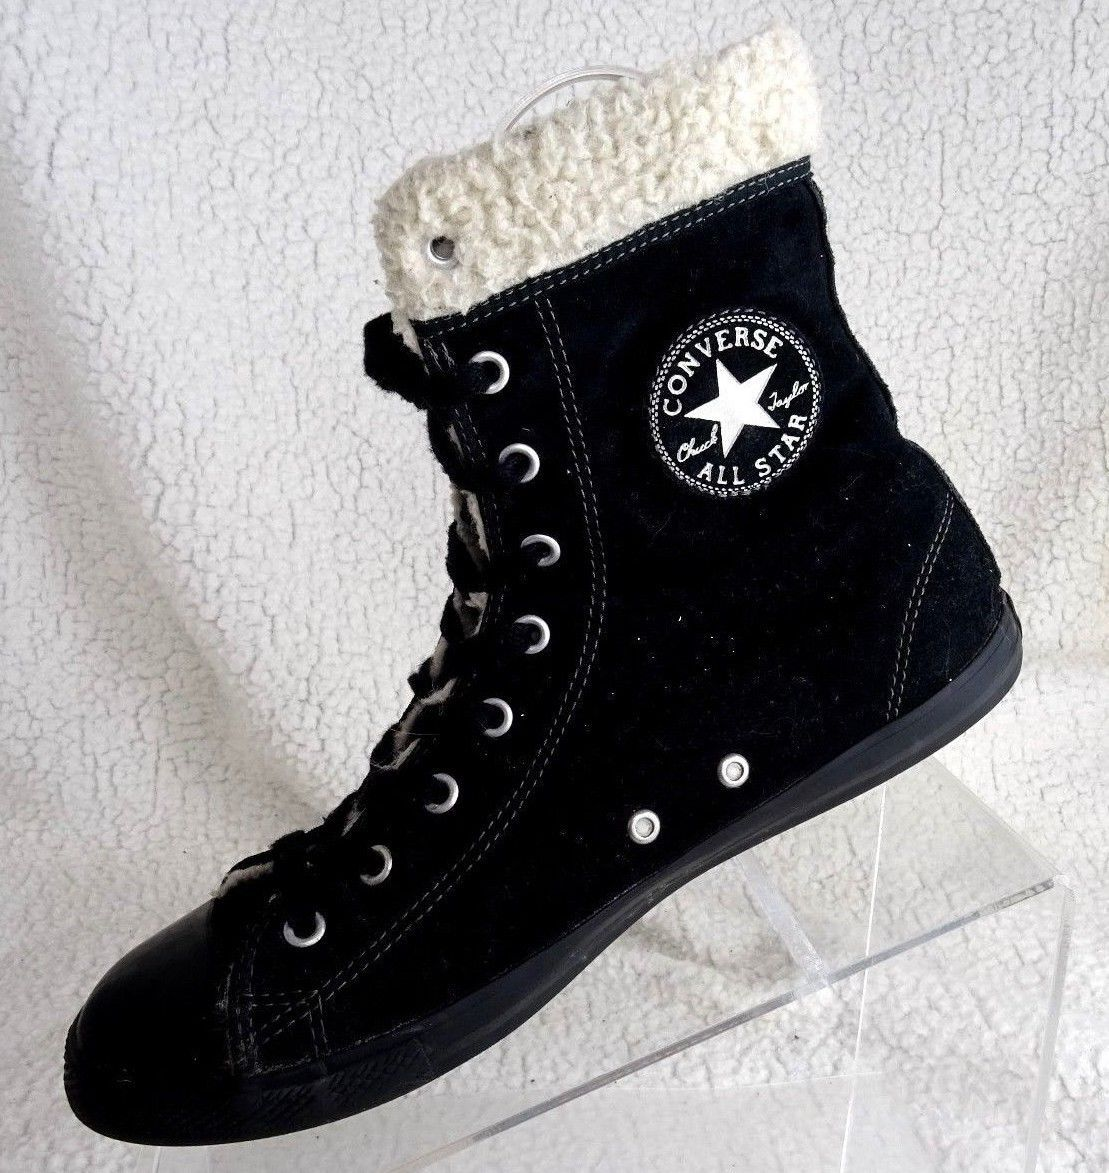 fa59b32710d4 Converse Chuck Taylor All Star Dainty Suede Leather Shearling Black Sz 9  Boots